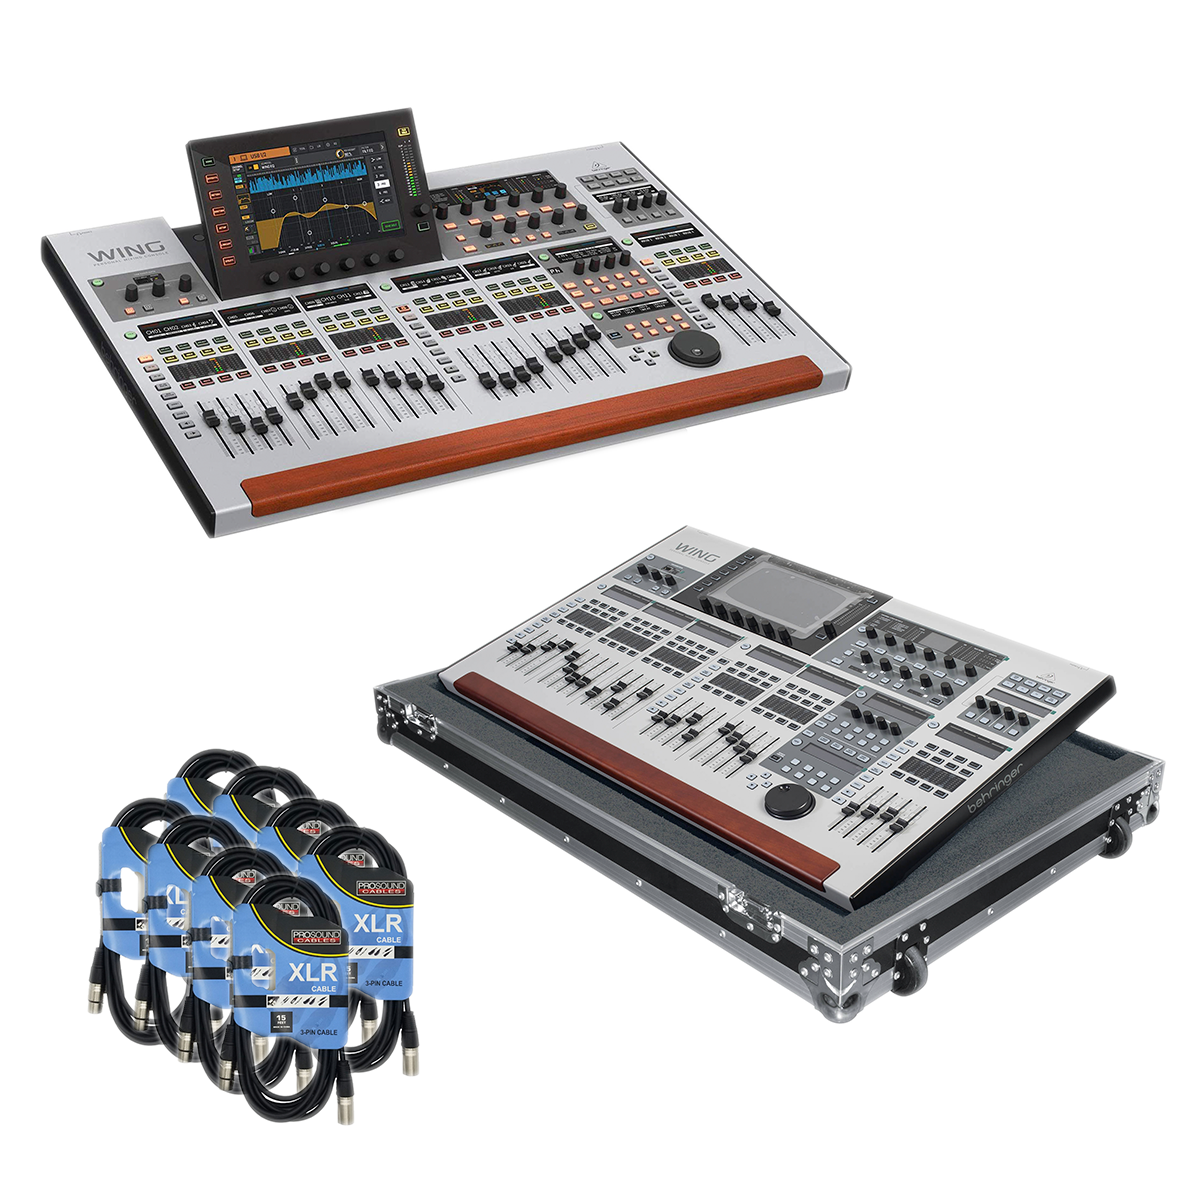 - 1 Behringer WING Mixing Console - Gator GTOURWINGNDH Case - 8 XLR Cable - $3499.99